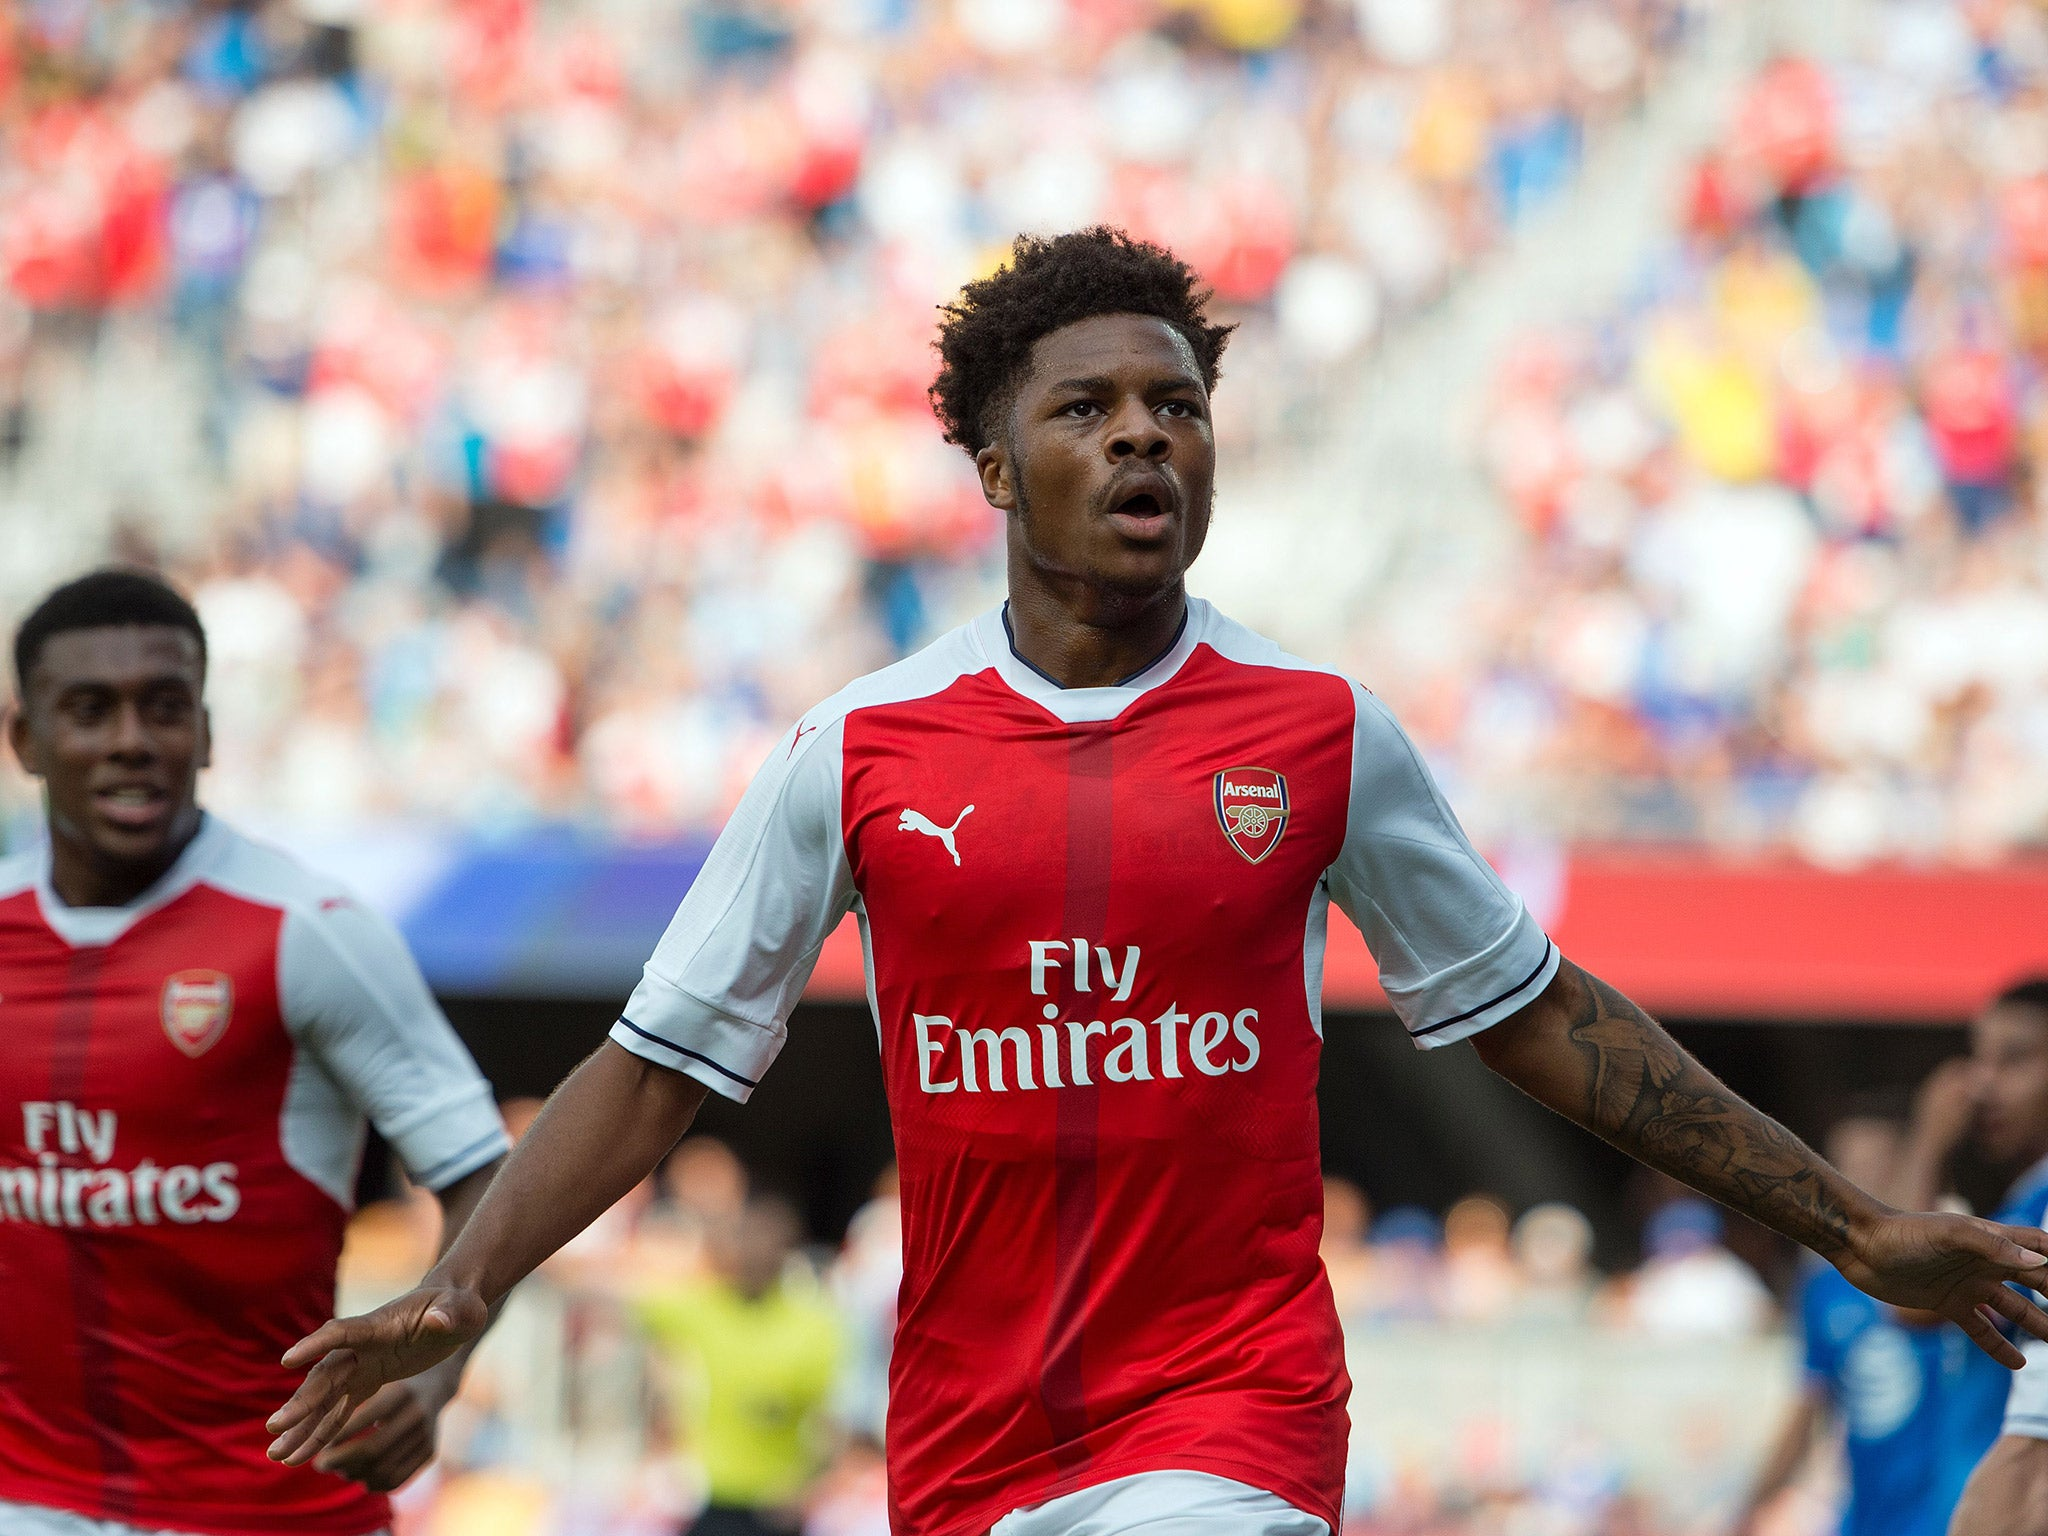 Arsenal vs MLS All-Stars match report: Didier Drogba returns to haunt Gunners but Chuba Akpom seals late win